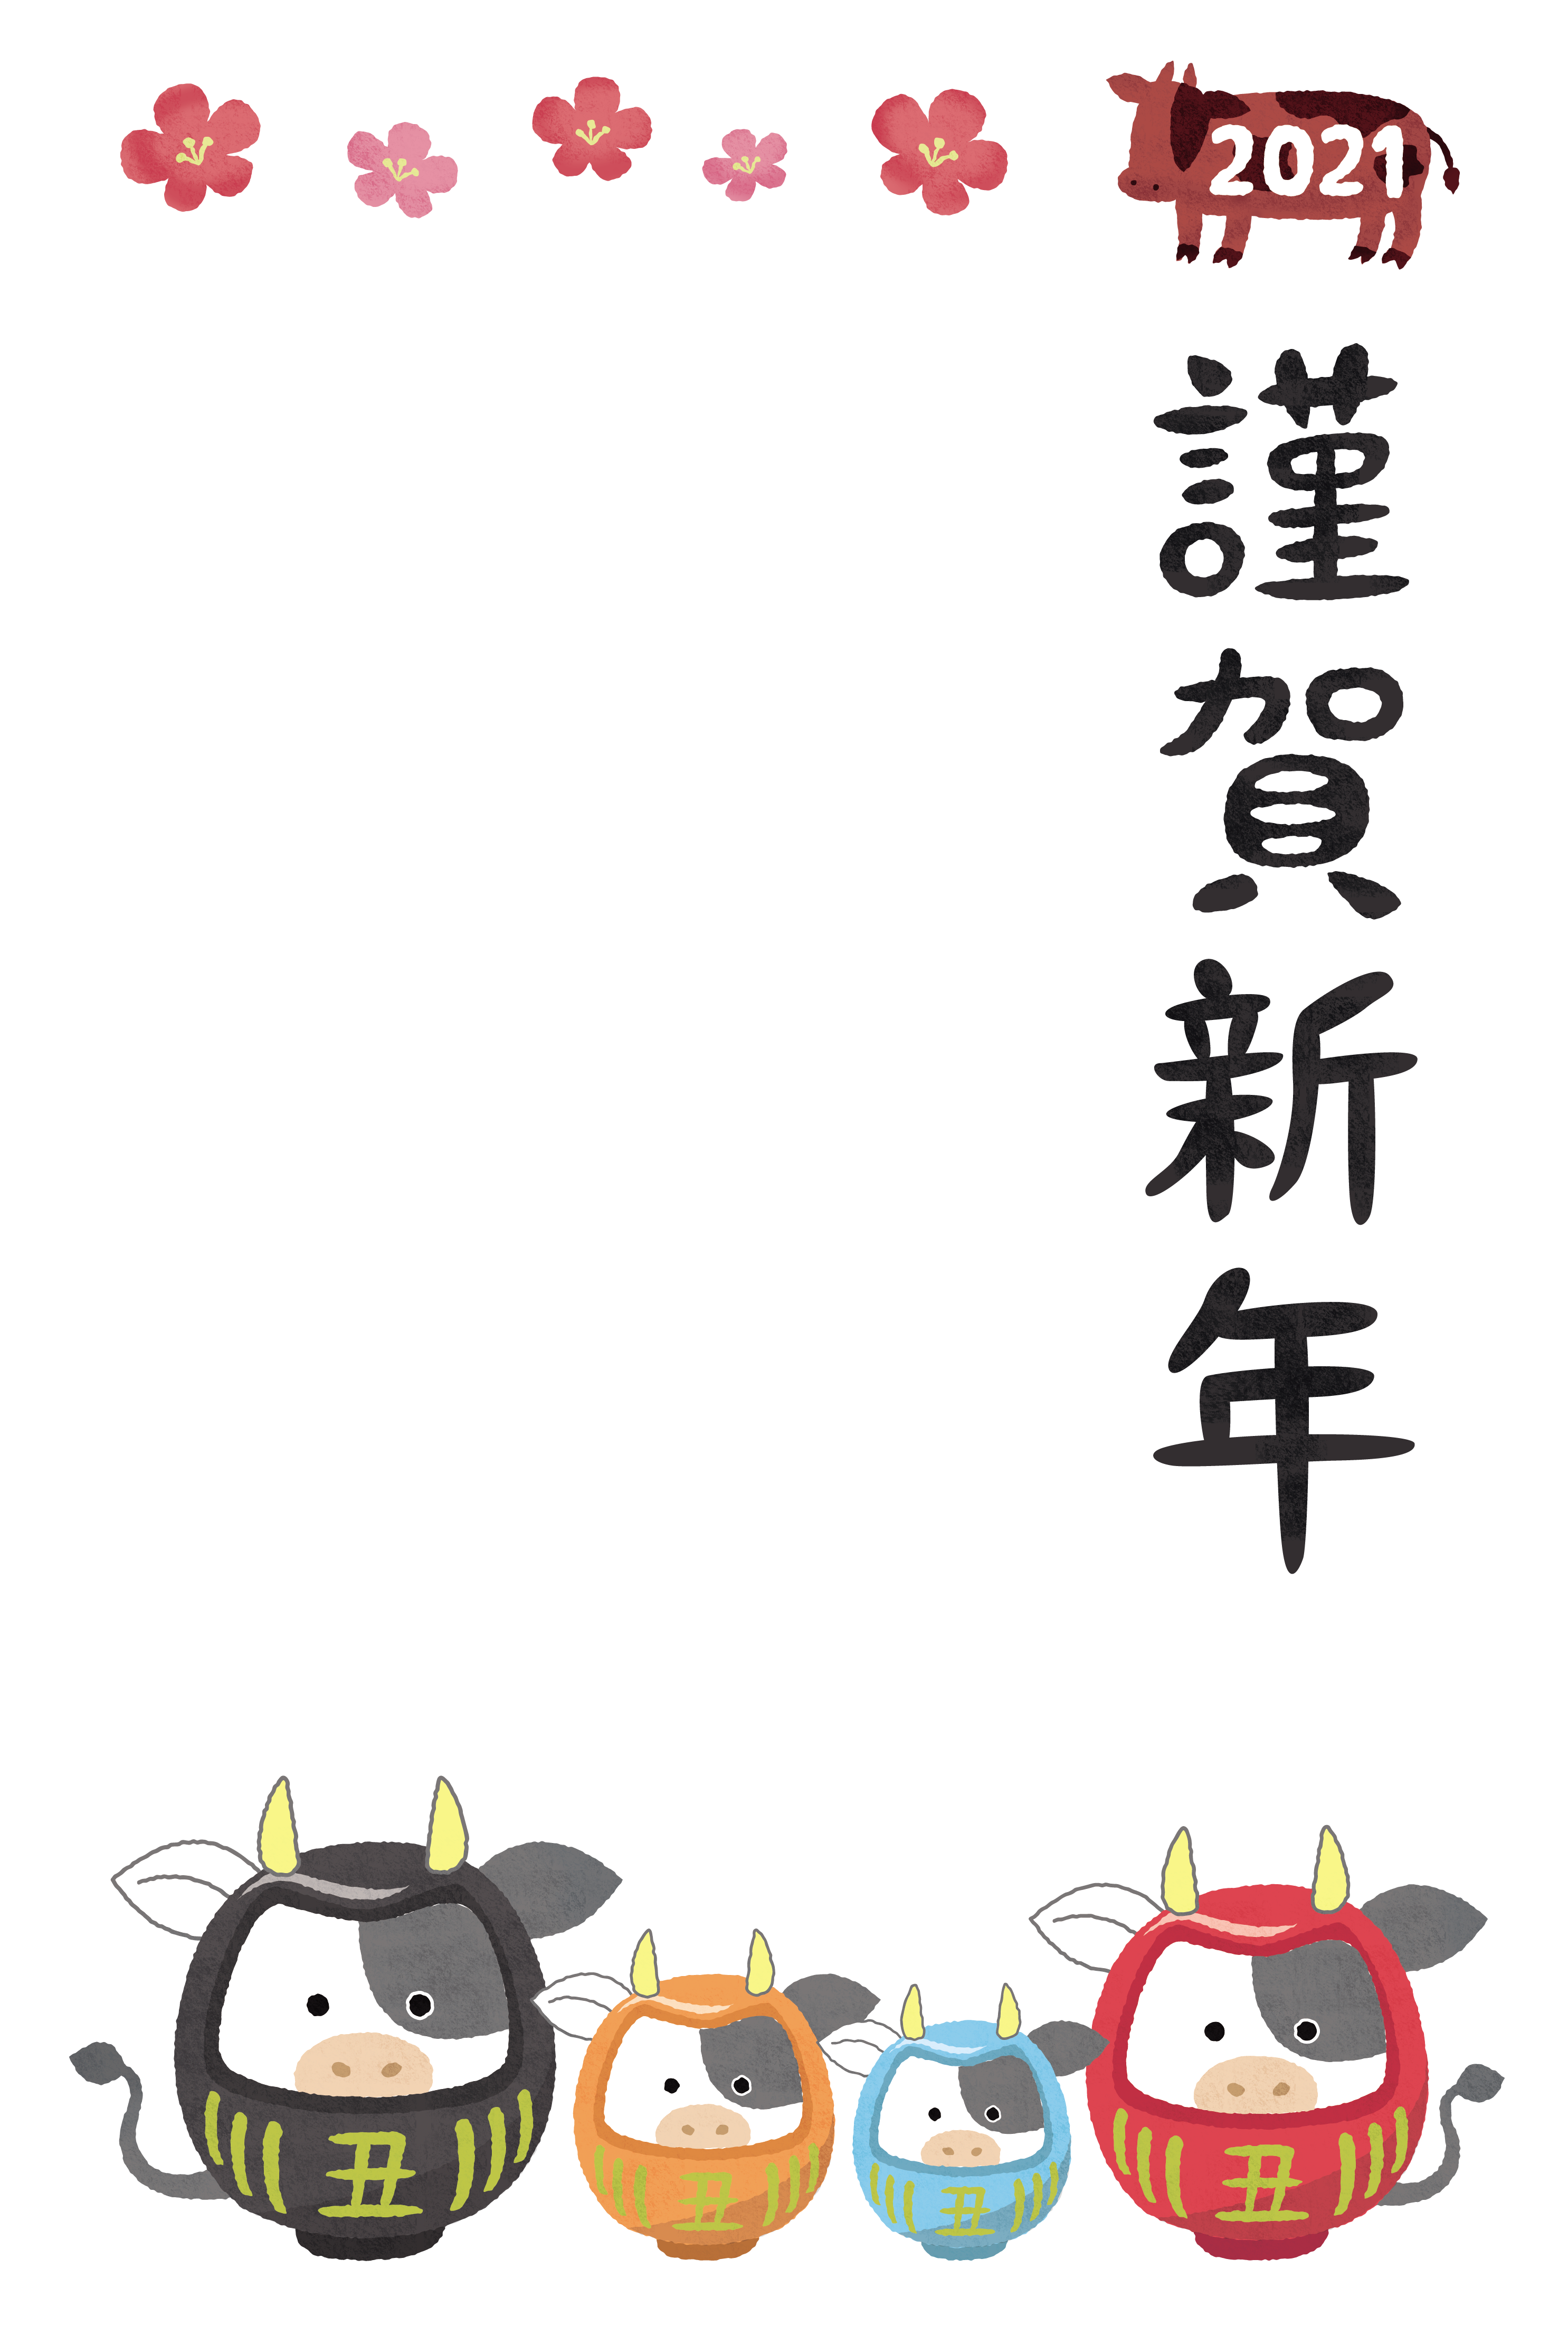 Kingashinnen Card Free Template (Cow daruma couple and children)